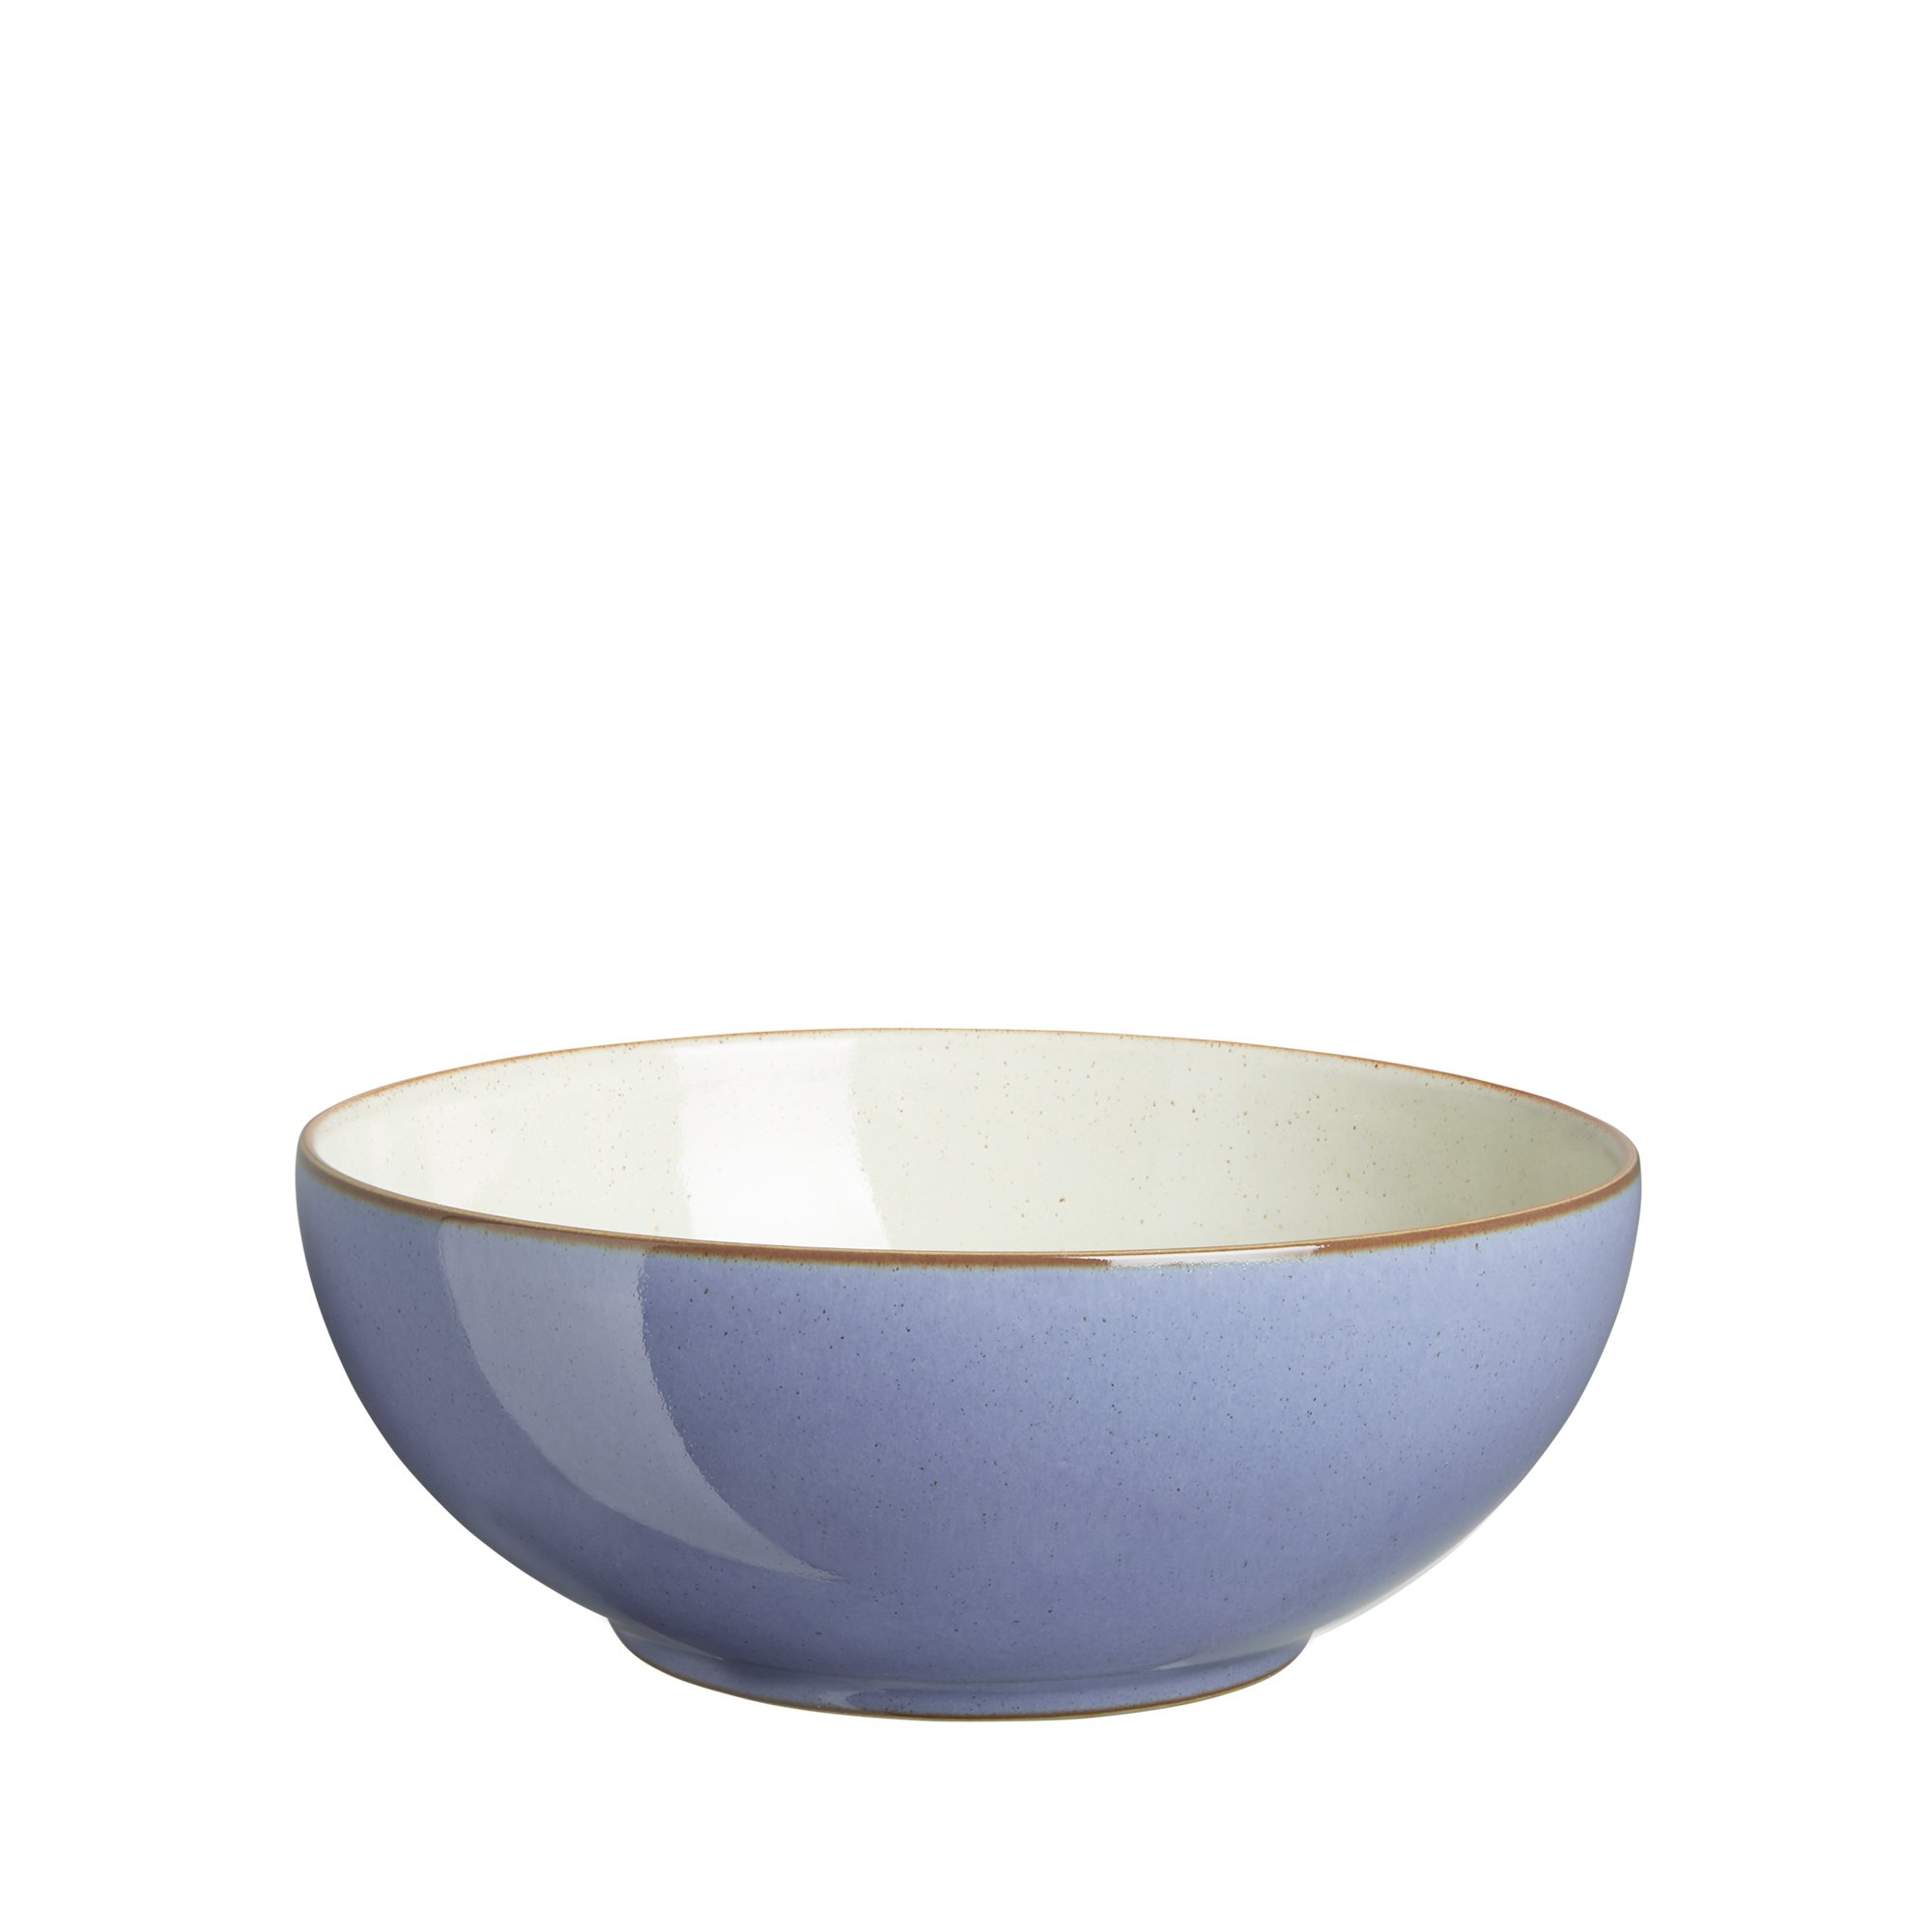 Denby USA Heritage Fountain Cereal Bowl, Multicolor